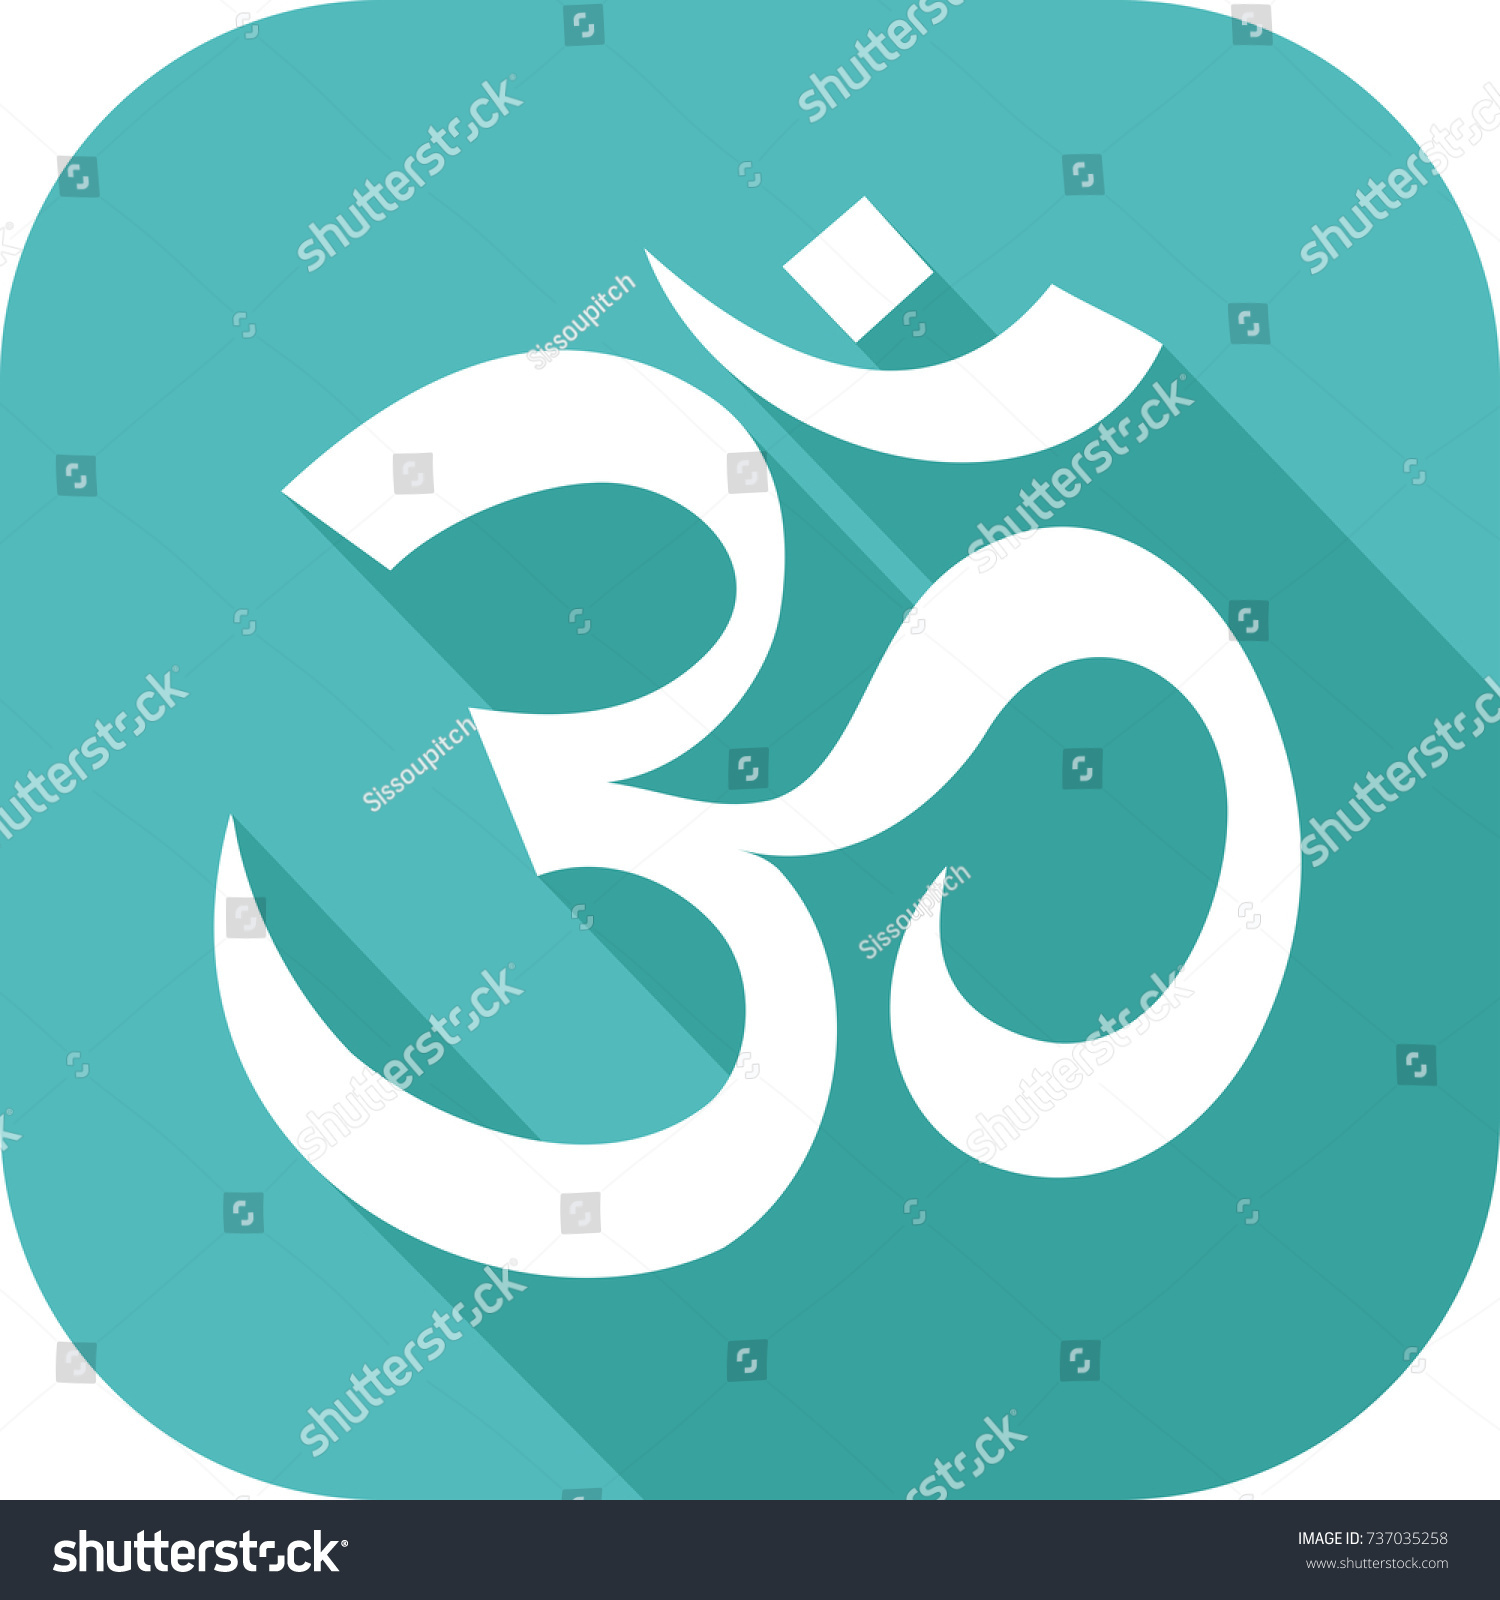 Icon symbol religion hinduism stock vector 737035258 shutterstock icon of the symbol of religion hinduism buycottarizona